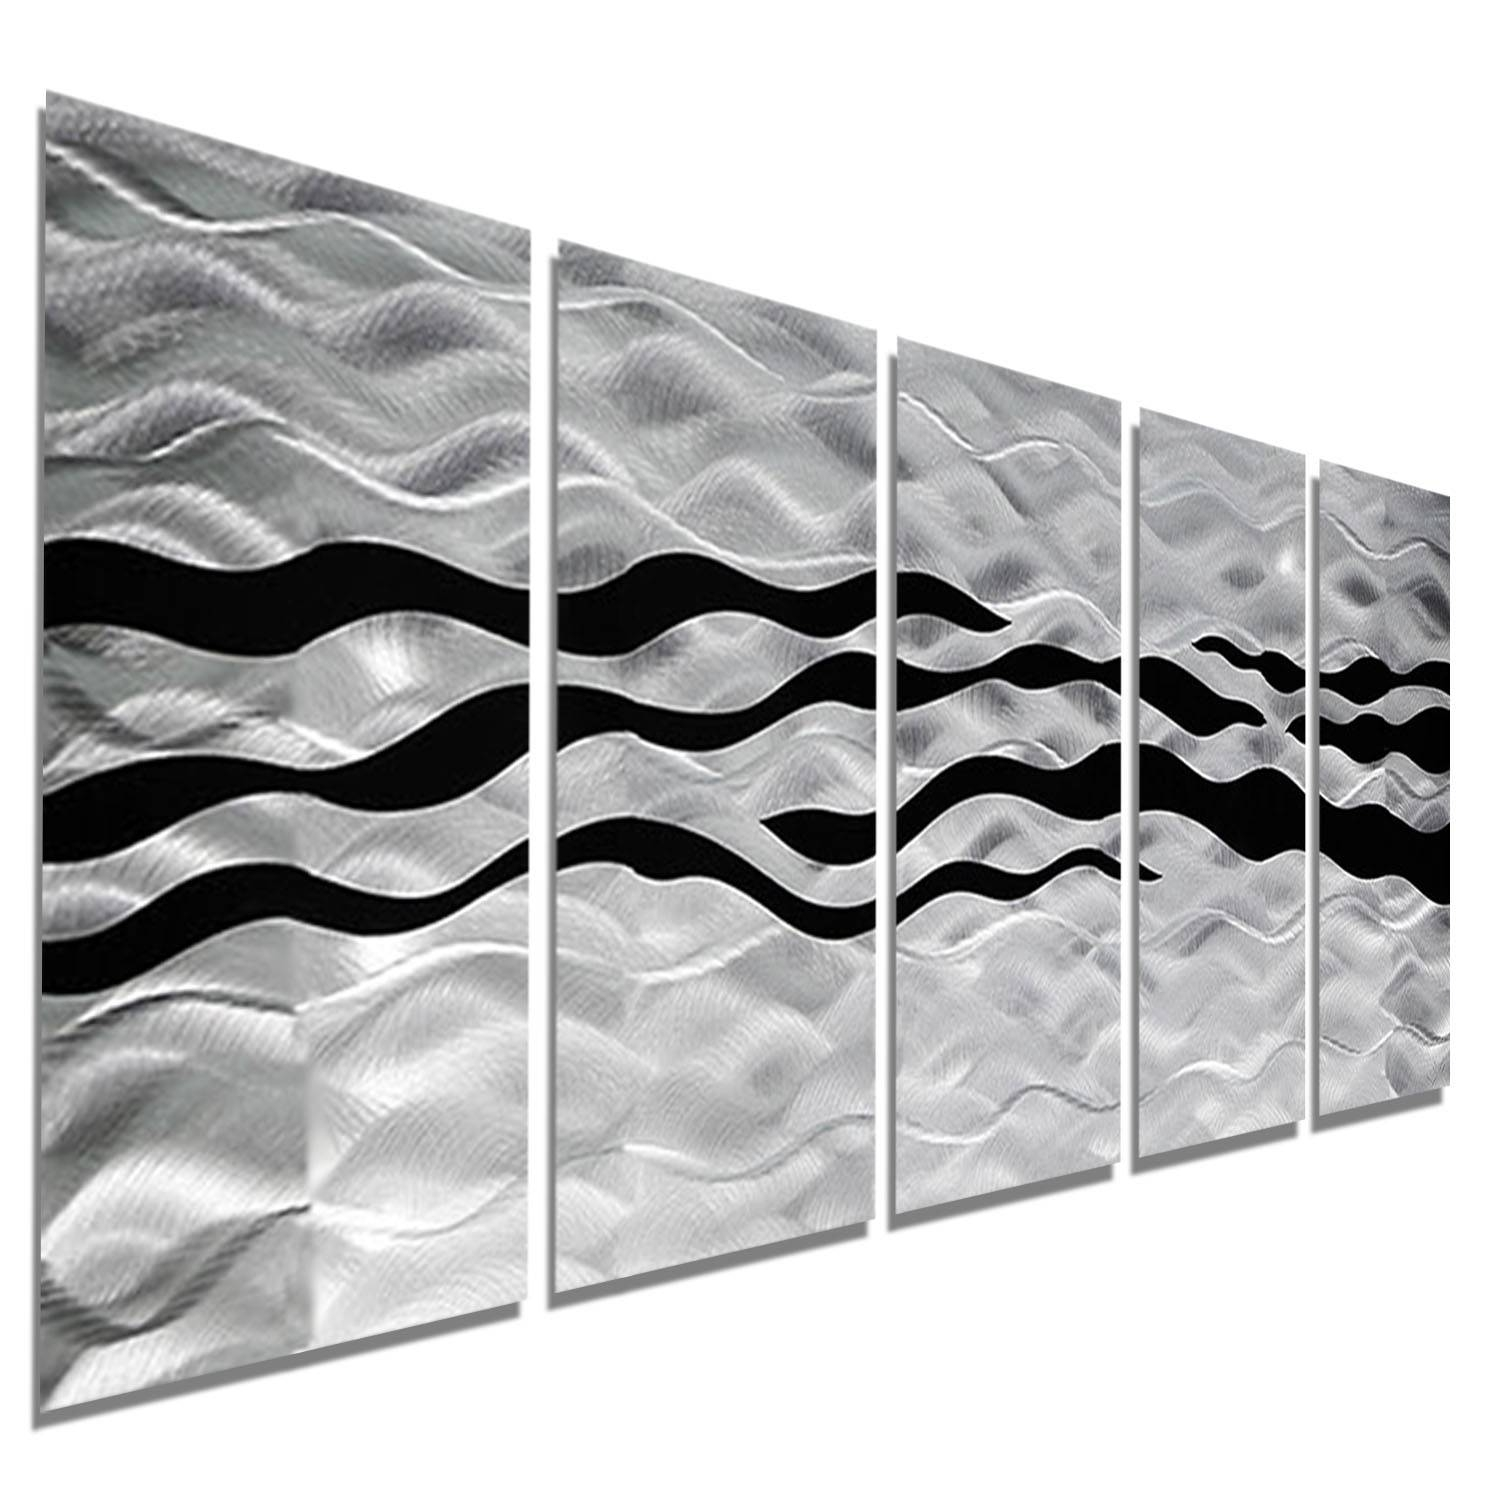 Onyx Oceana – Silver And Black Metal Wall Art – 5 Panel Wall Décor For Most Up To Date Black Silver Wall Art (Gallery 8 of 20)